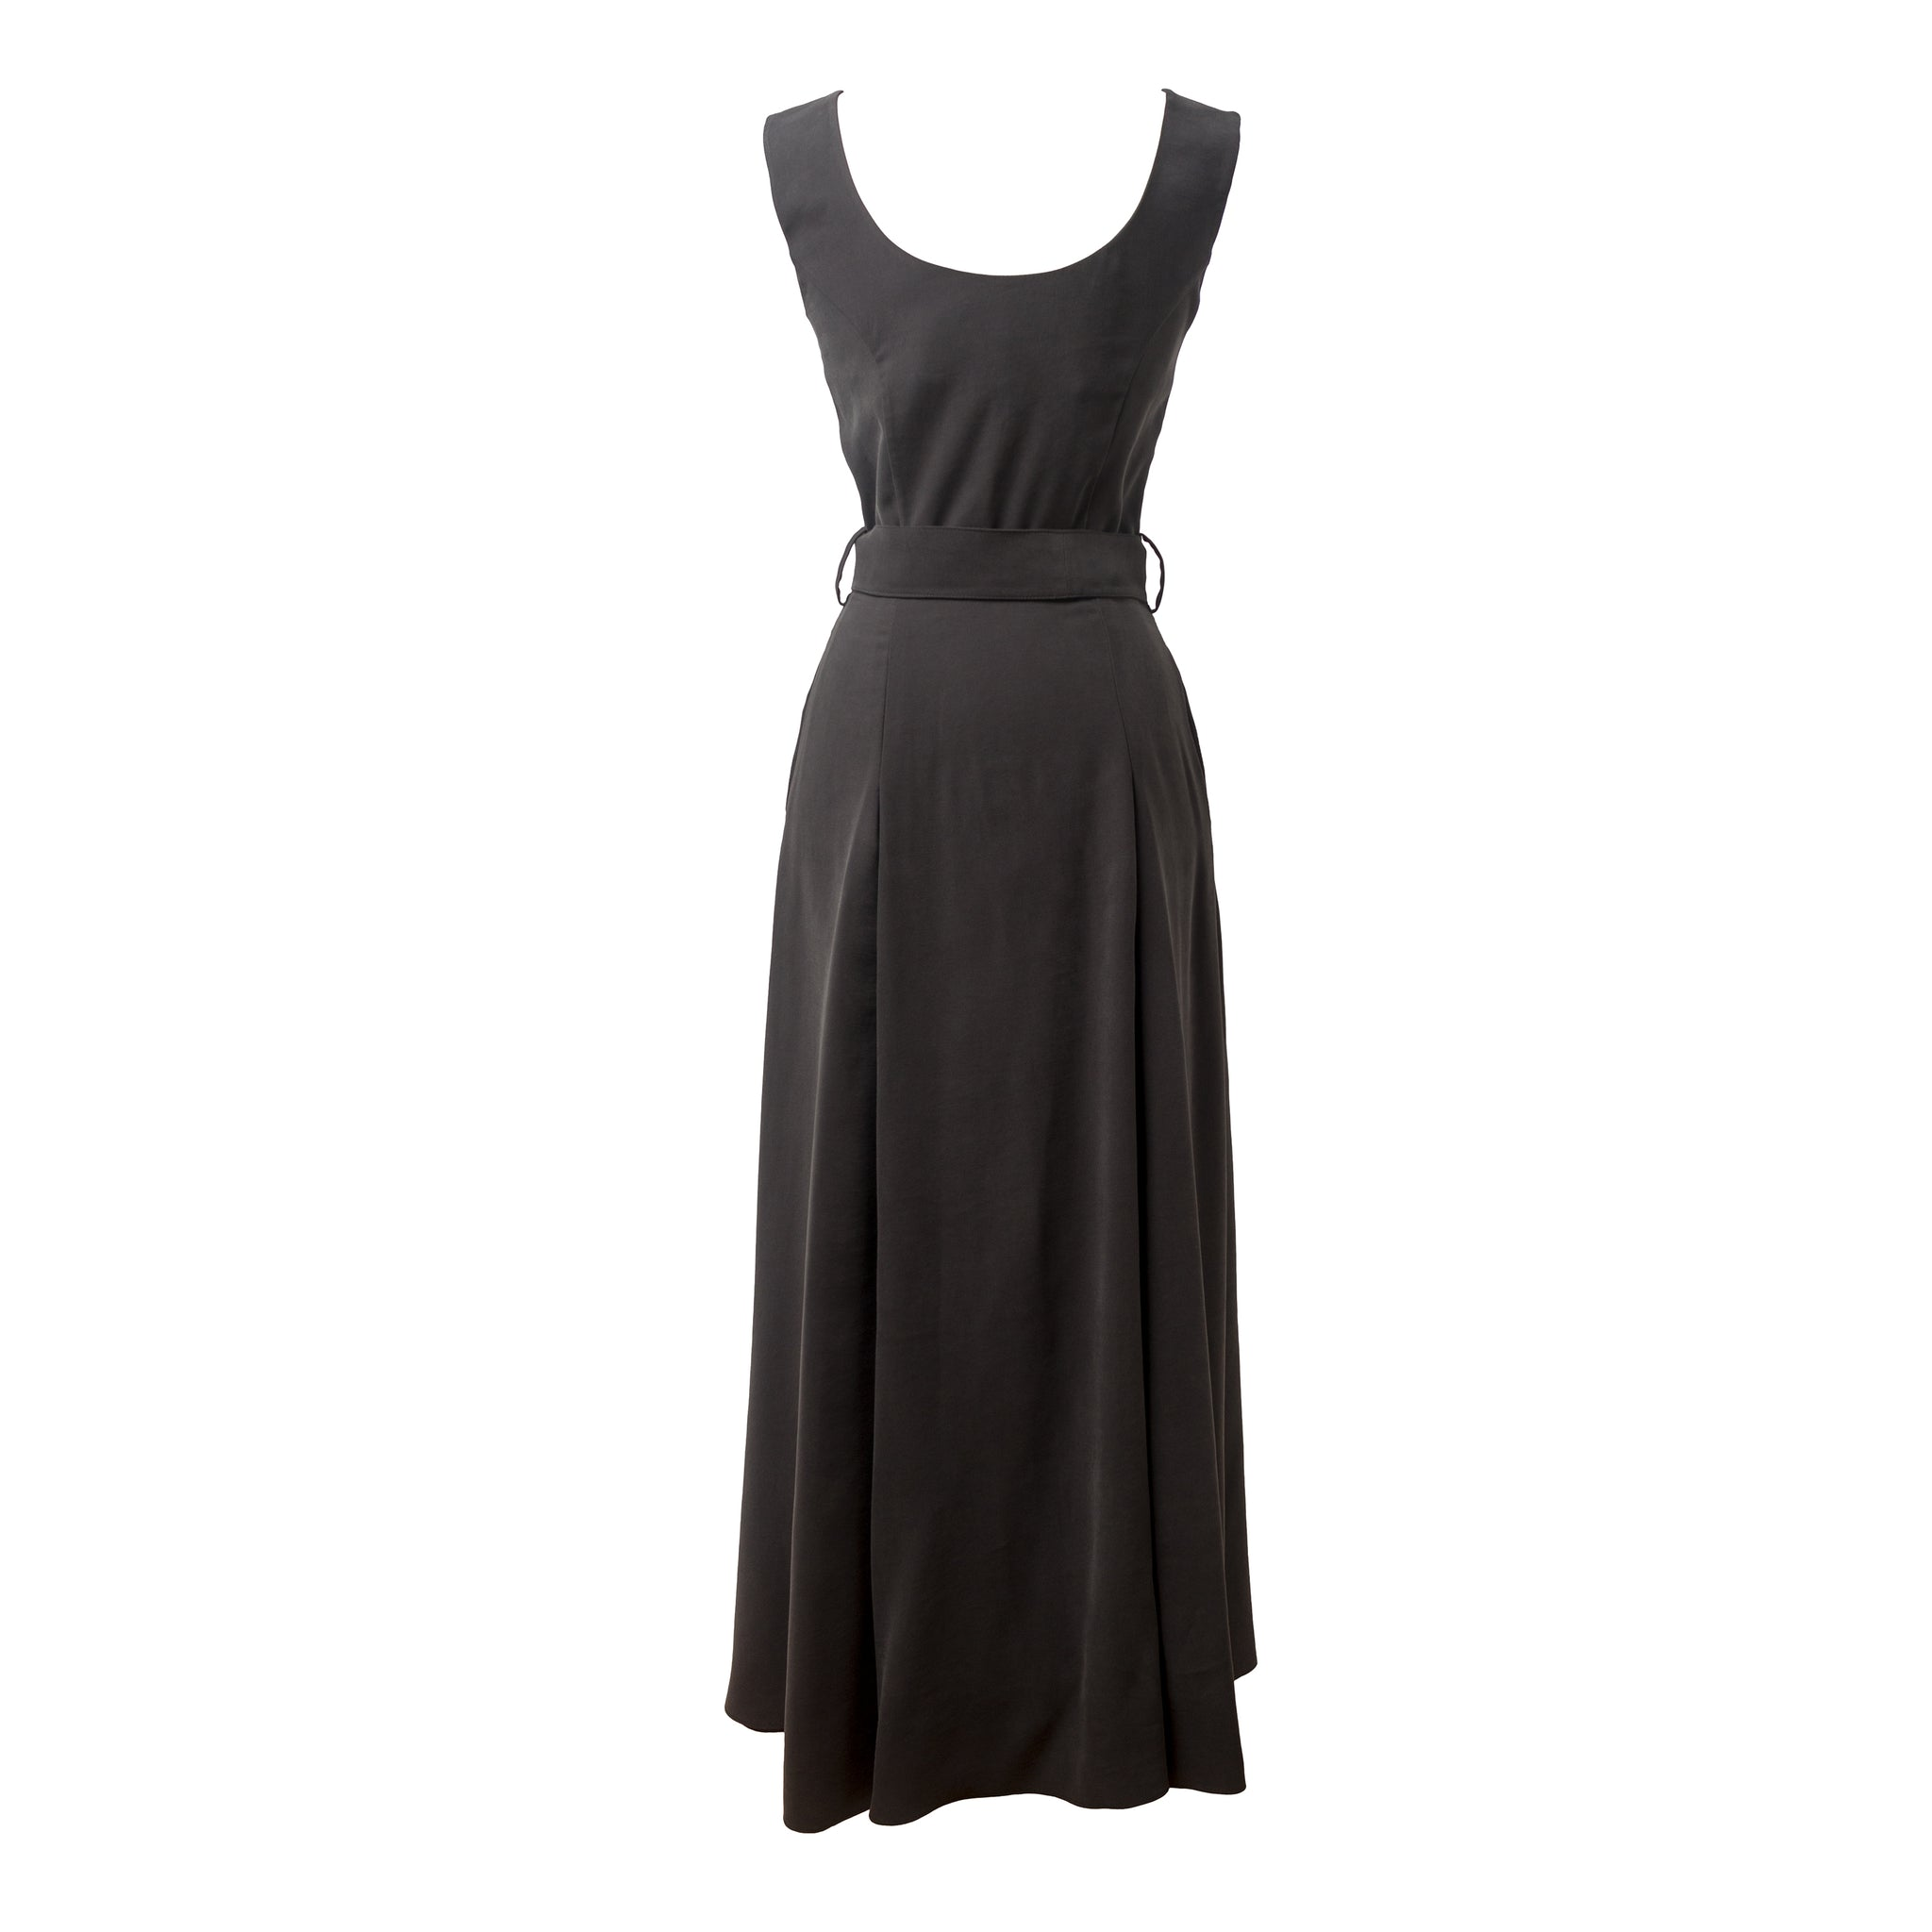 BALASTYA Charcoal Multi Slits Dress